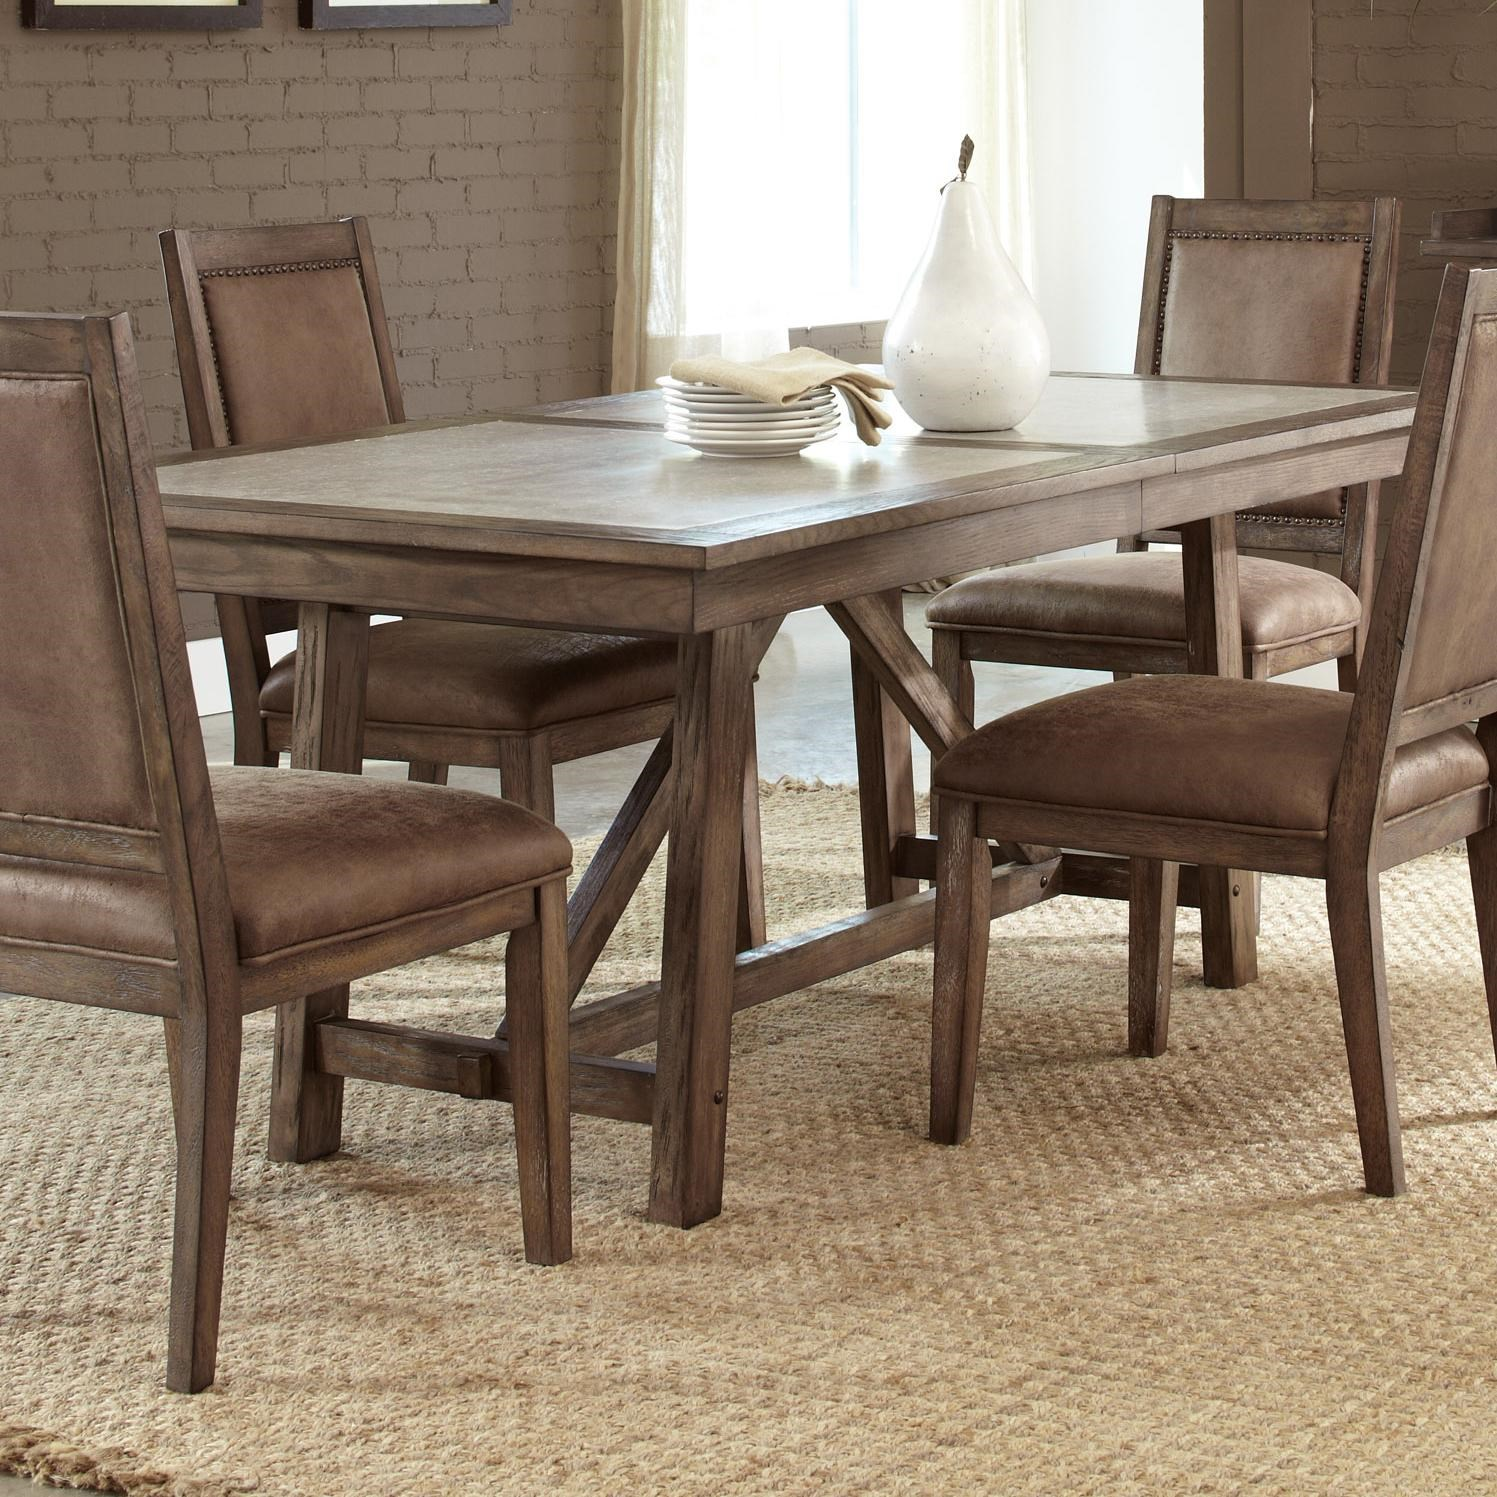 Liberty Furniture Stone Brook Casual Cement Top Trestle Table